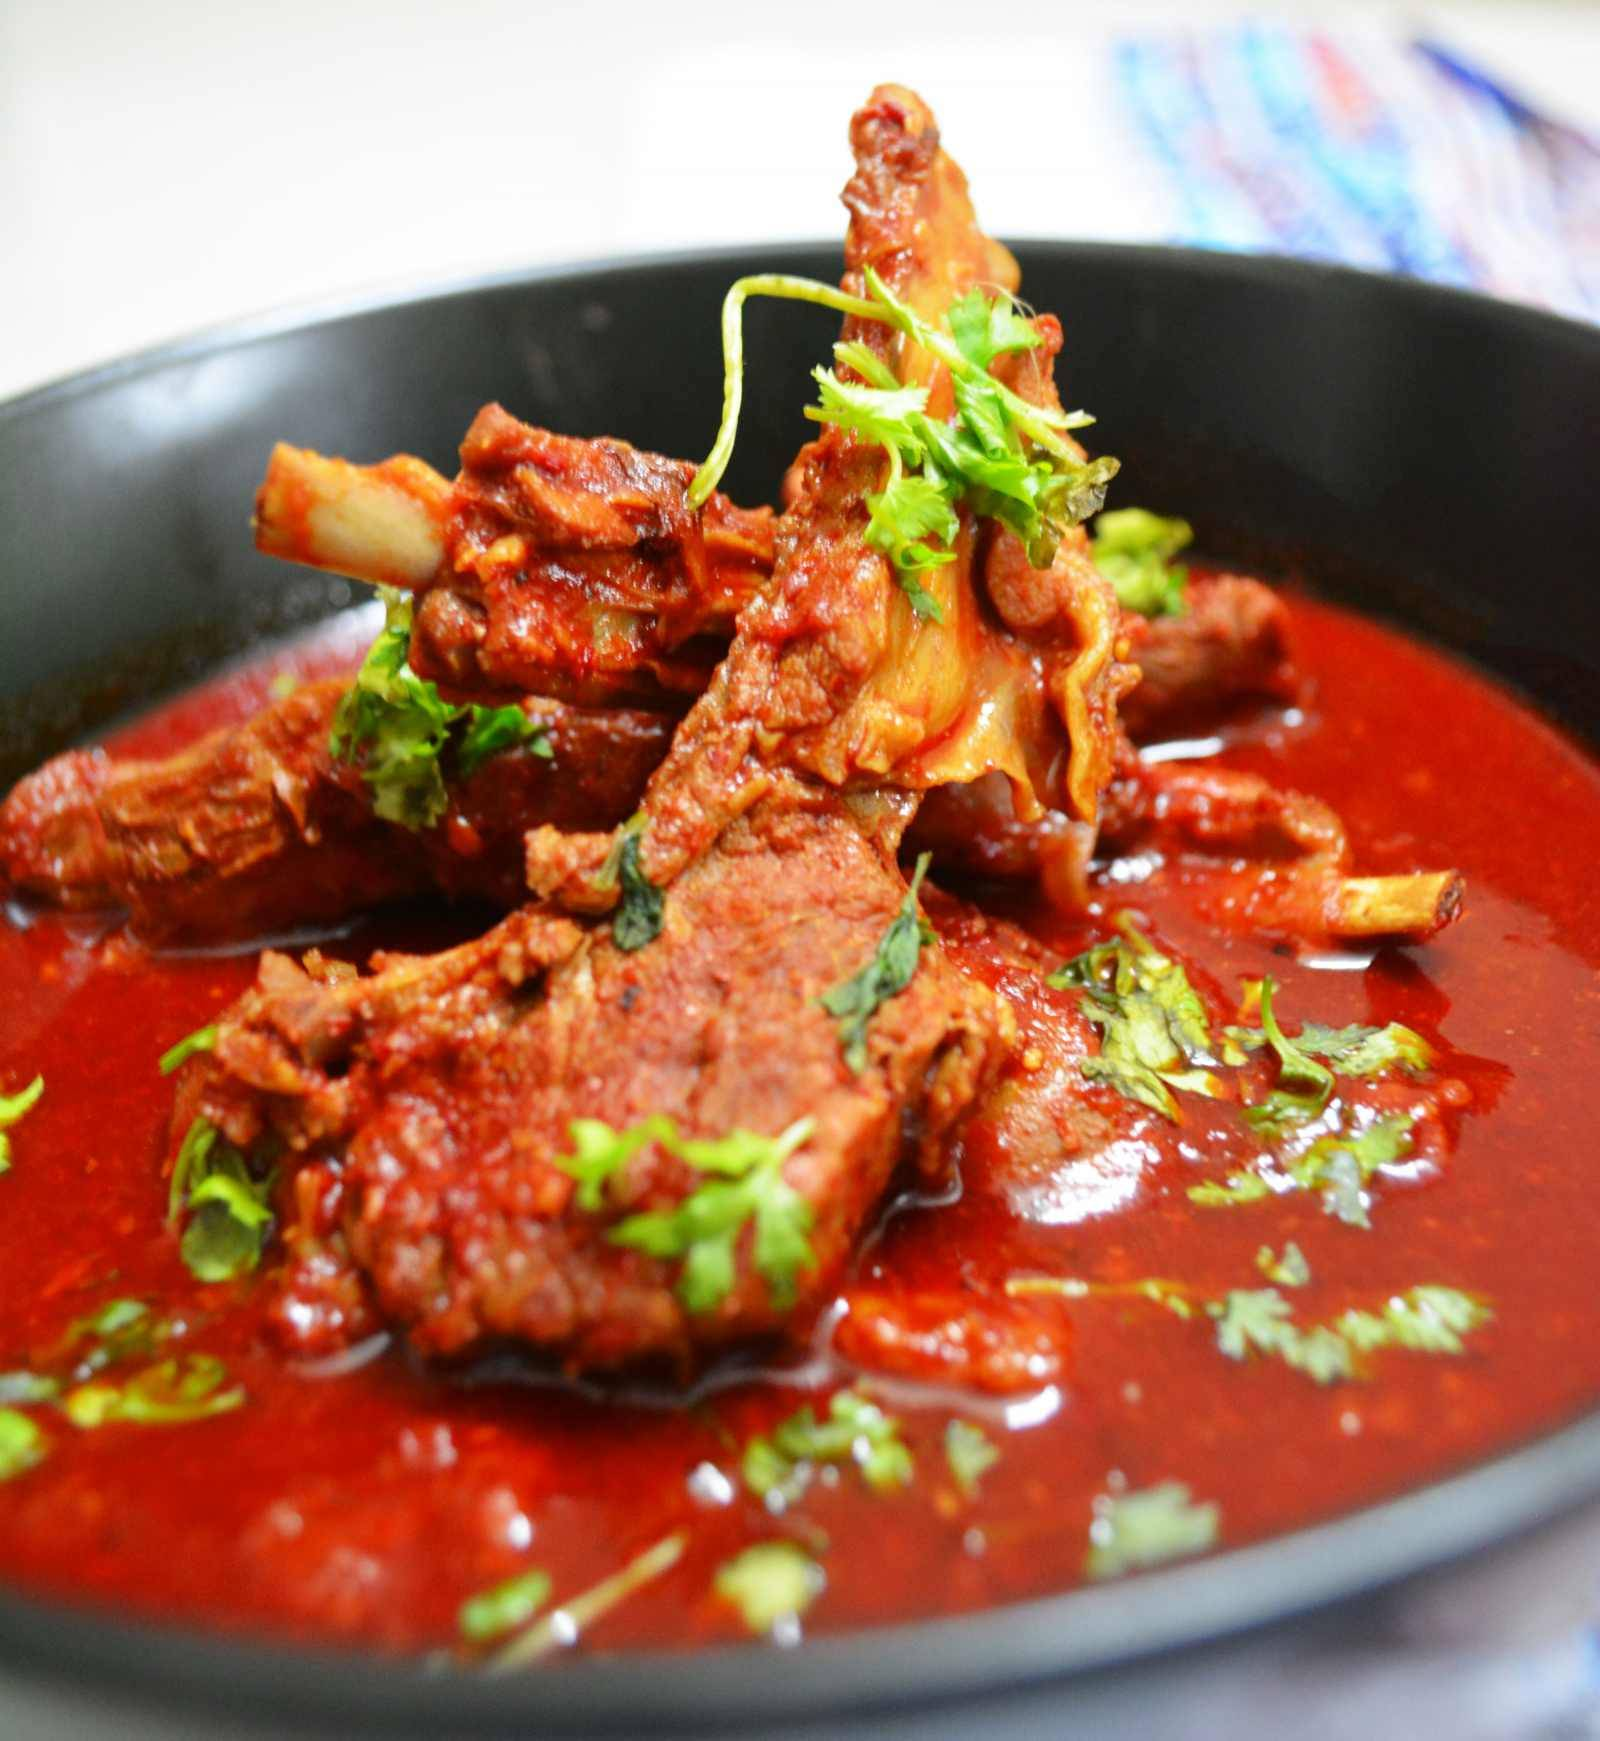 Rajasthani laal maas recipe mutton in red spicy gravy by archanas rajasthani laal maas recipe mutton in red spicy gravy forumfinder Choice Image